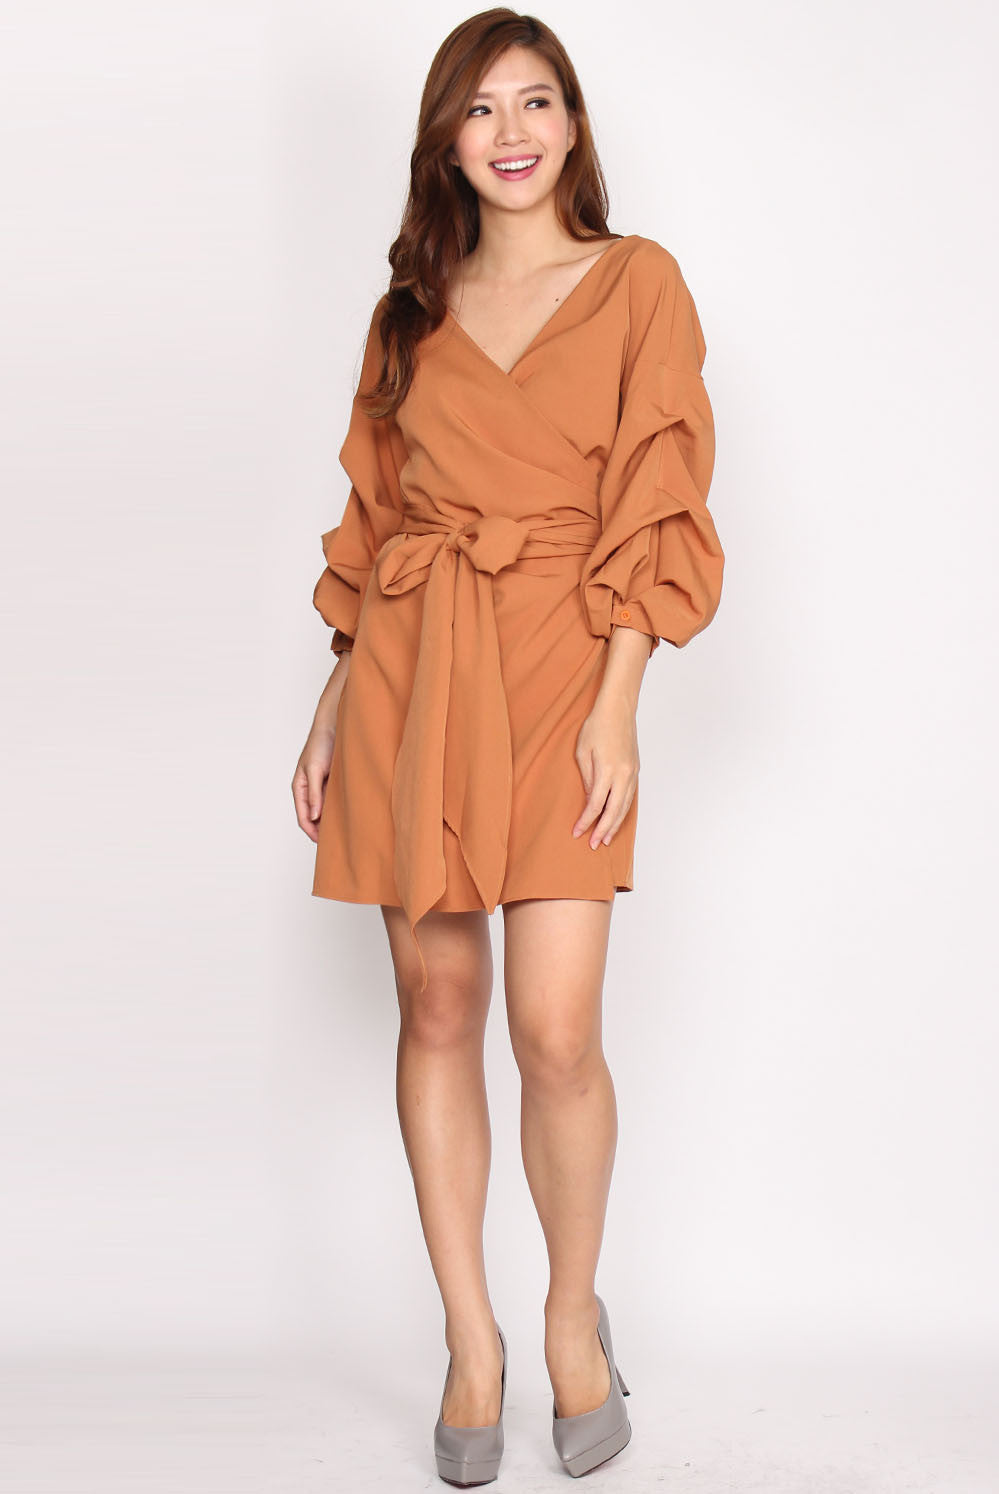 *Restock* Maud Balloon Sleeve Wrap Dress In Camel